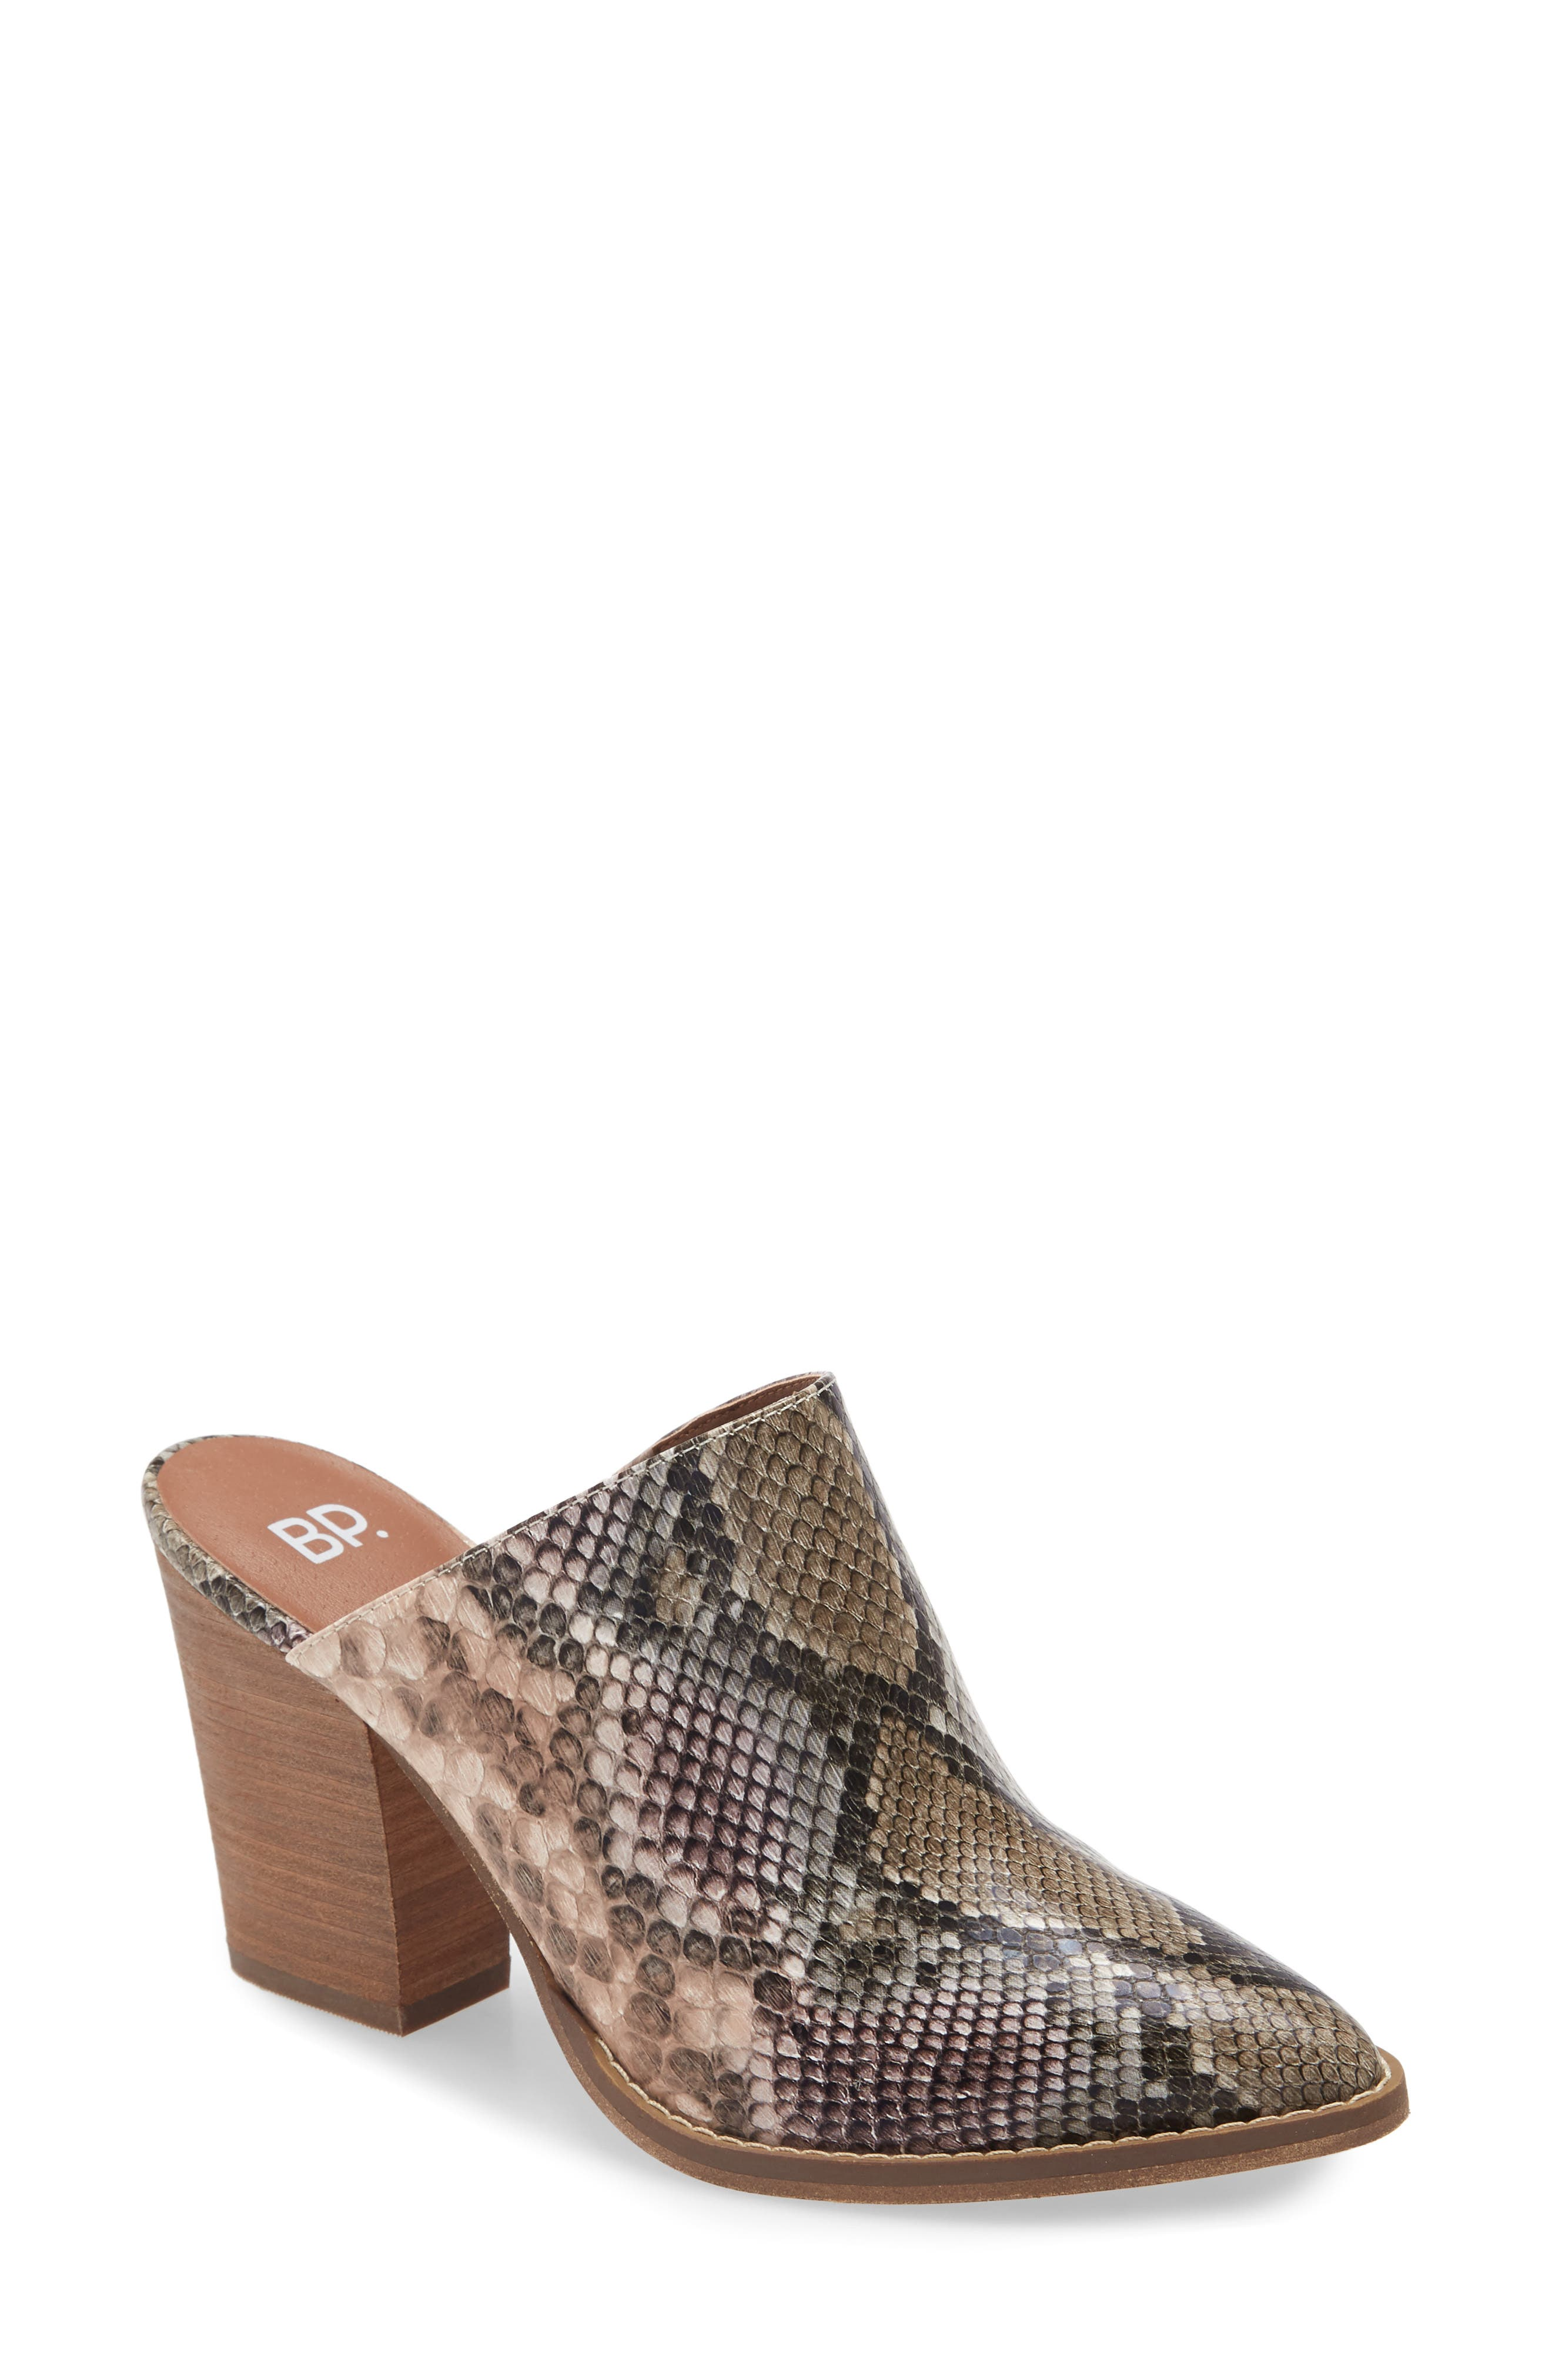 A snakeskin-embossed upper brings wildly chic style to a sophisticated mule with a gently pointed toe and a chunky stacked heel. Style Name: Bp. Maya Mule (Women). Style Number: 6055382. Available in stores.